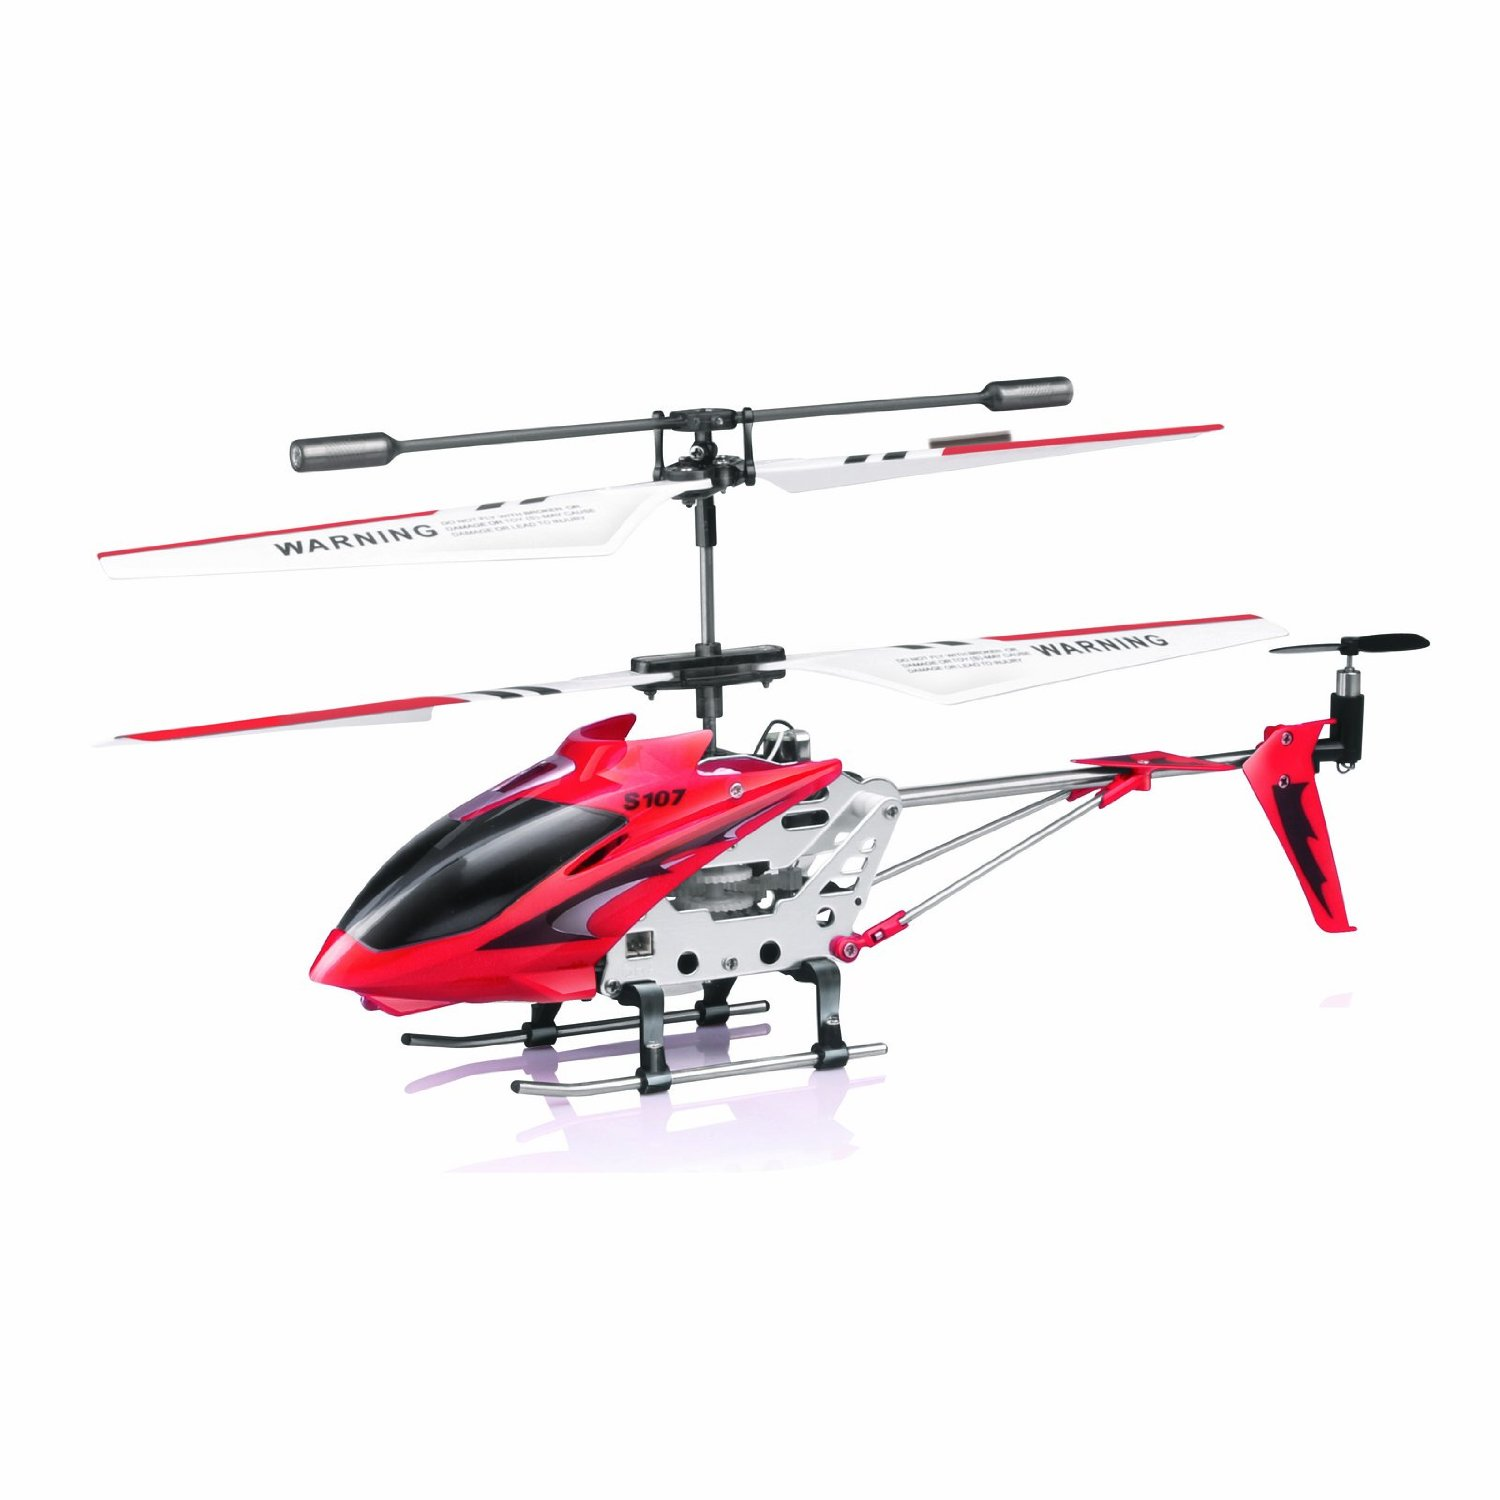 The Tenergy Syma S107 helicopter review